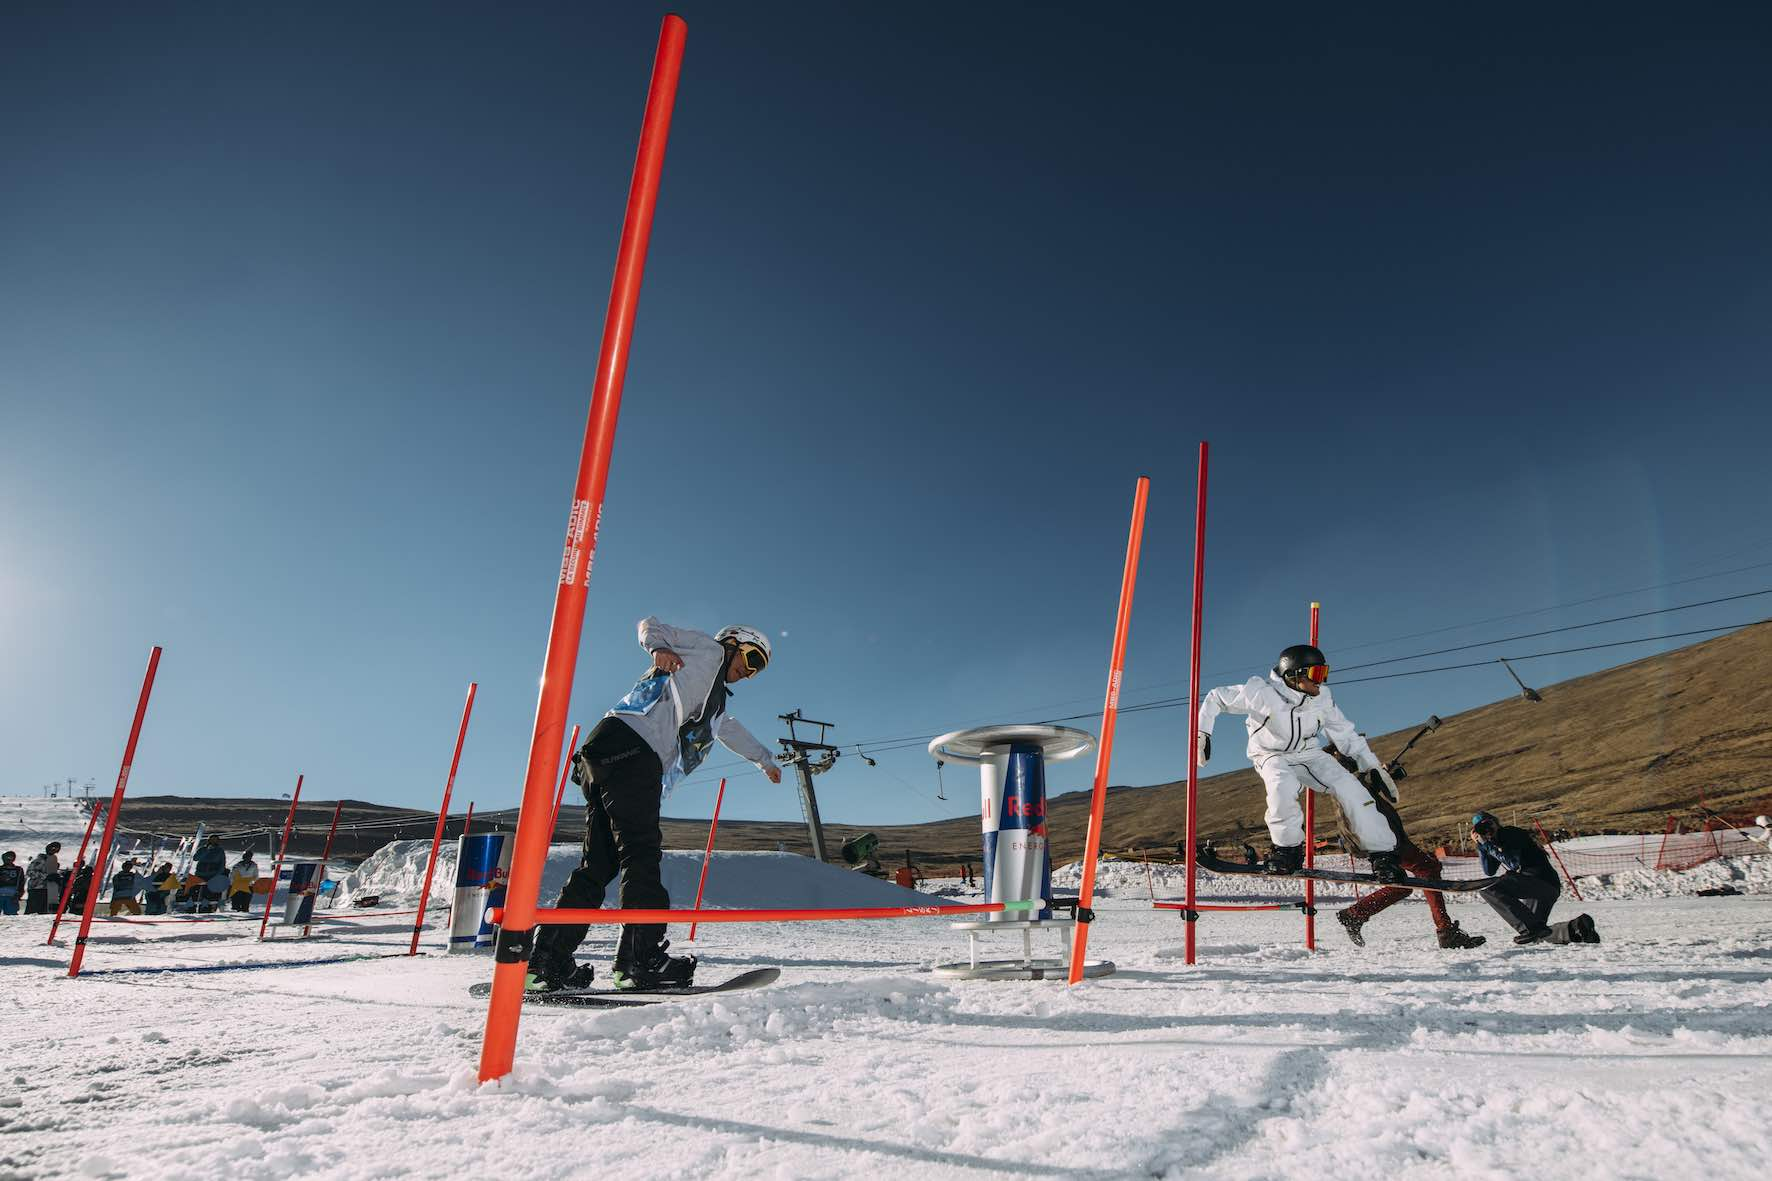 The Red Bull Ollie-Off at the 2019 Winter Whip at Afriski